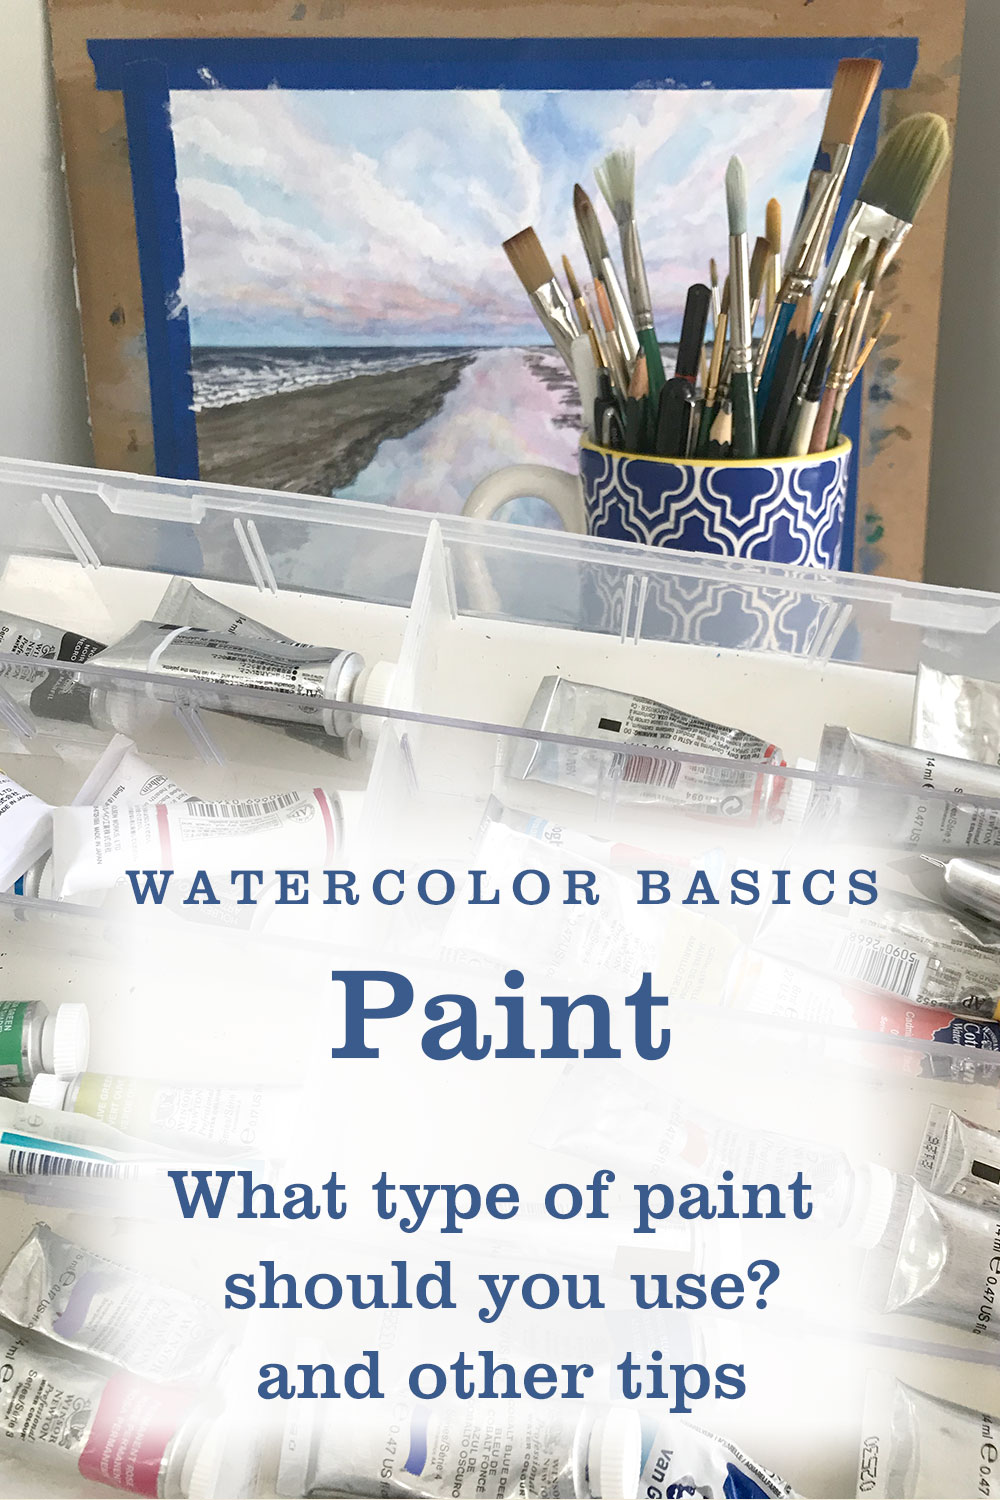 Watercolor Basics ~ Paint - What type of paint should you use?